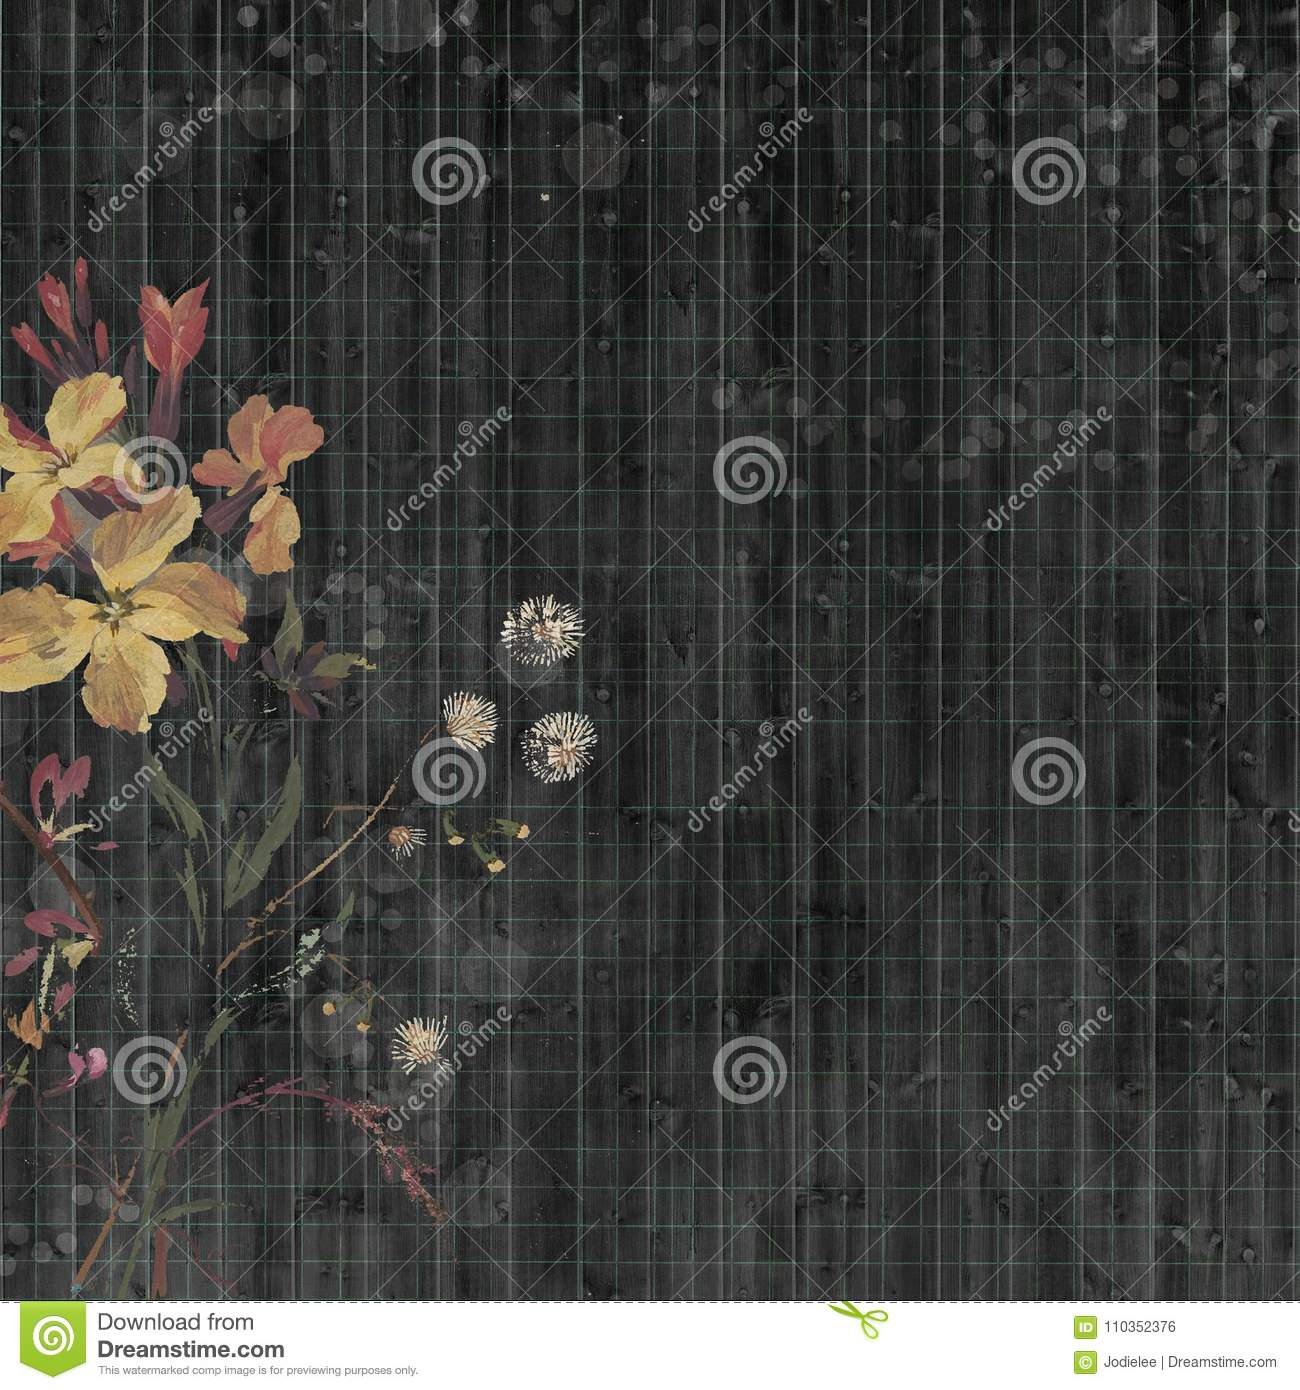 Black Bohemian gypsy floral antique vintage grungy shabby chic artistic abstract graphical ledger paper background with flower